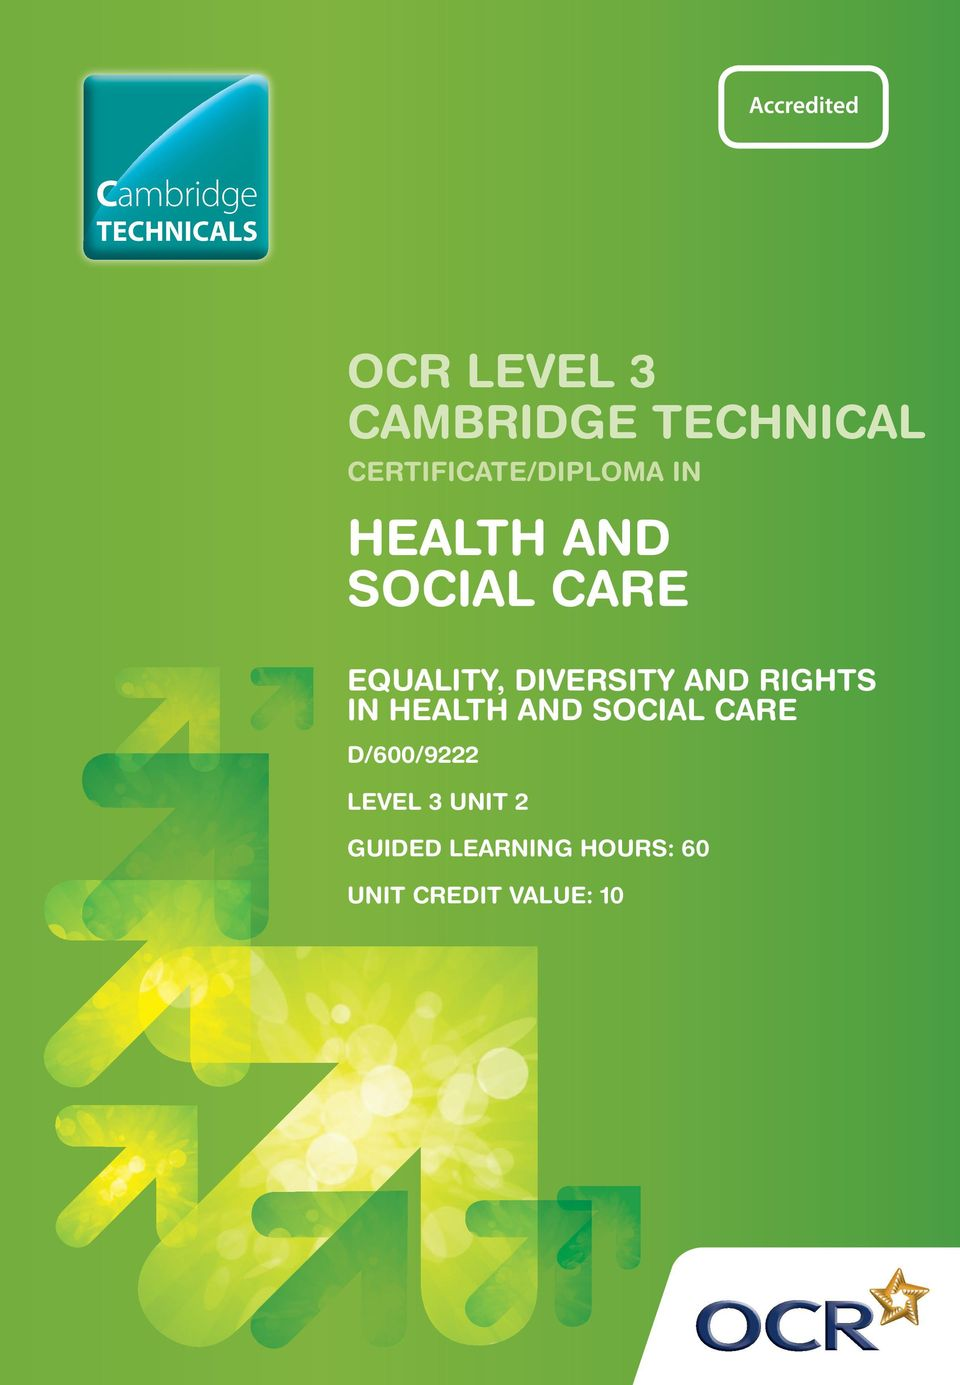 DIVERSITY AND RIGHTS IN HEALTH AND SOCIAL CARE D/600/9222